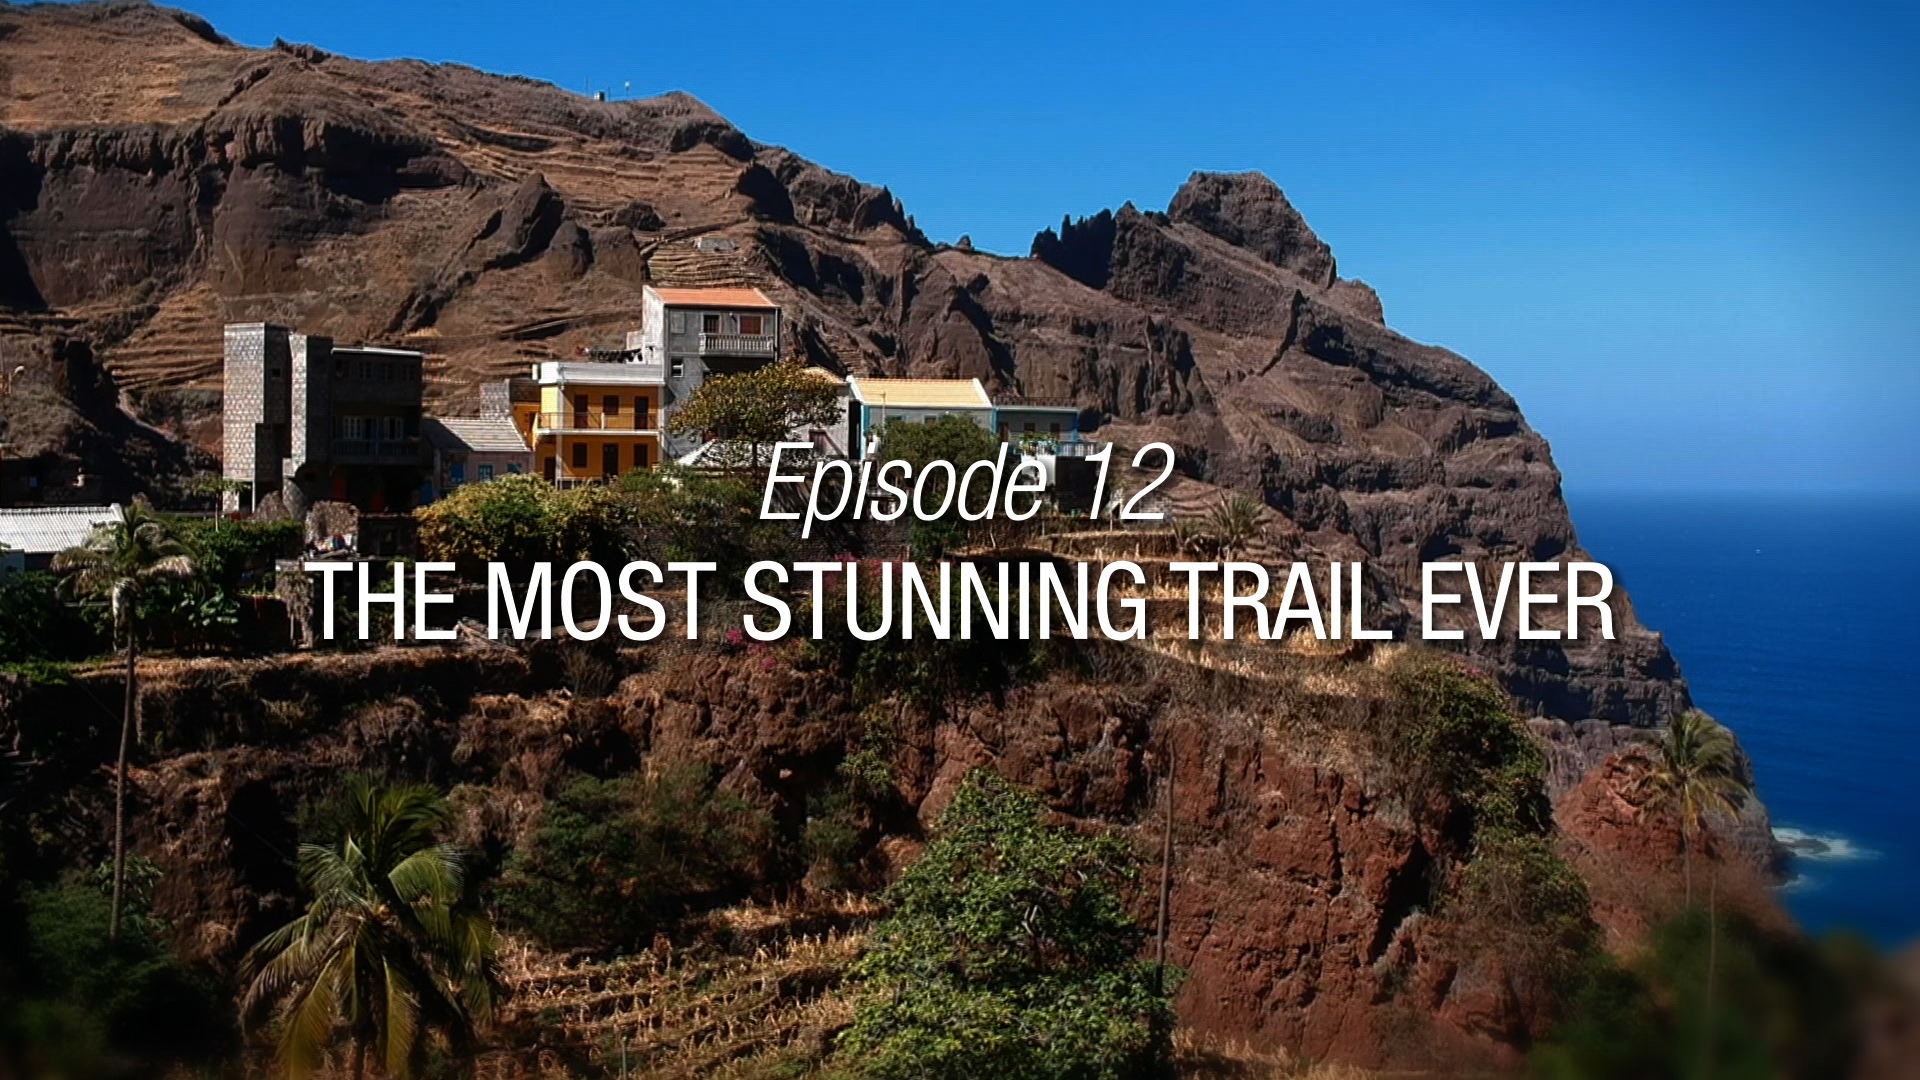 Windedvoyage Com: The Most Stunning Trail Ever - Windedvoyage.com